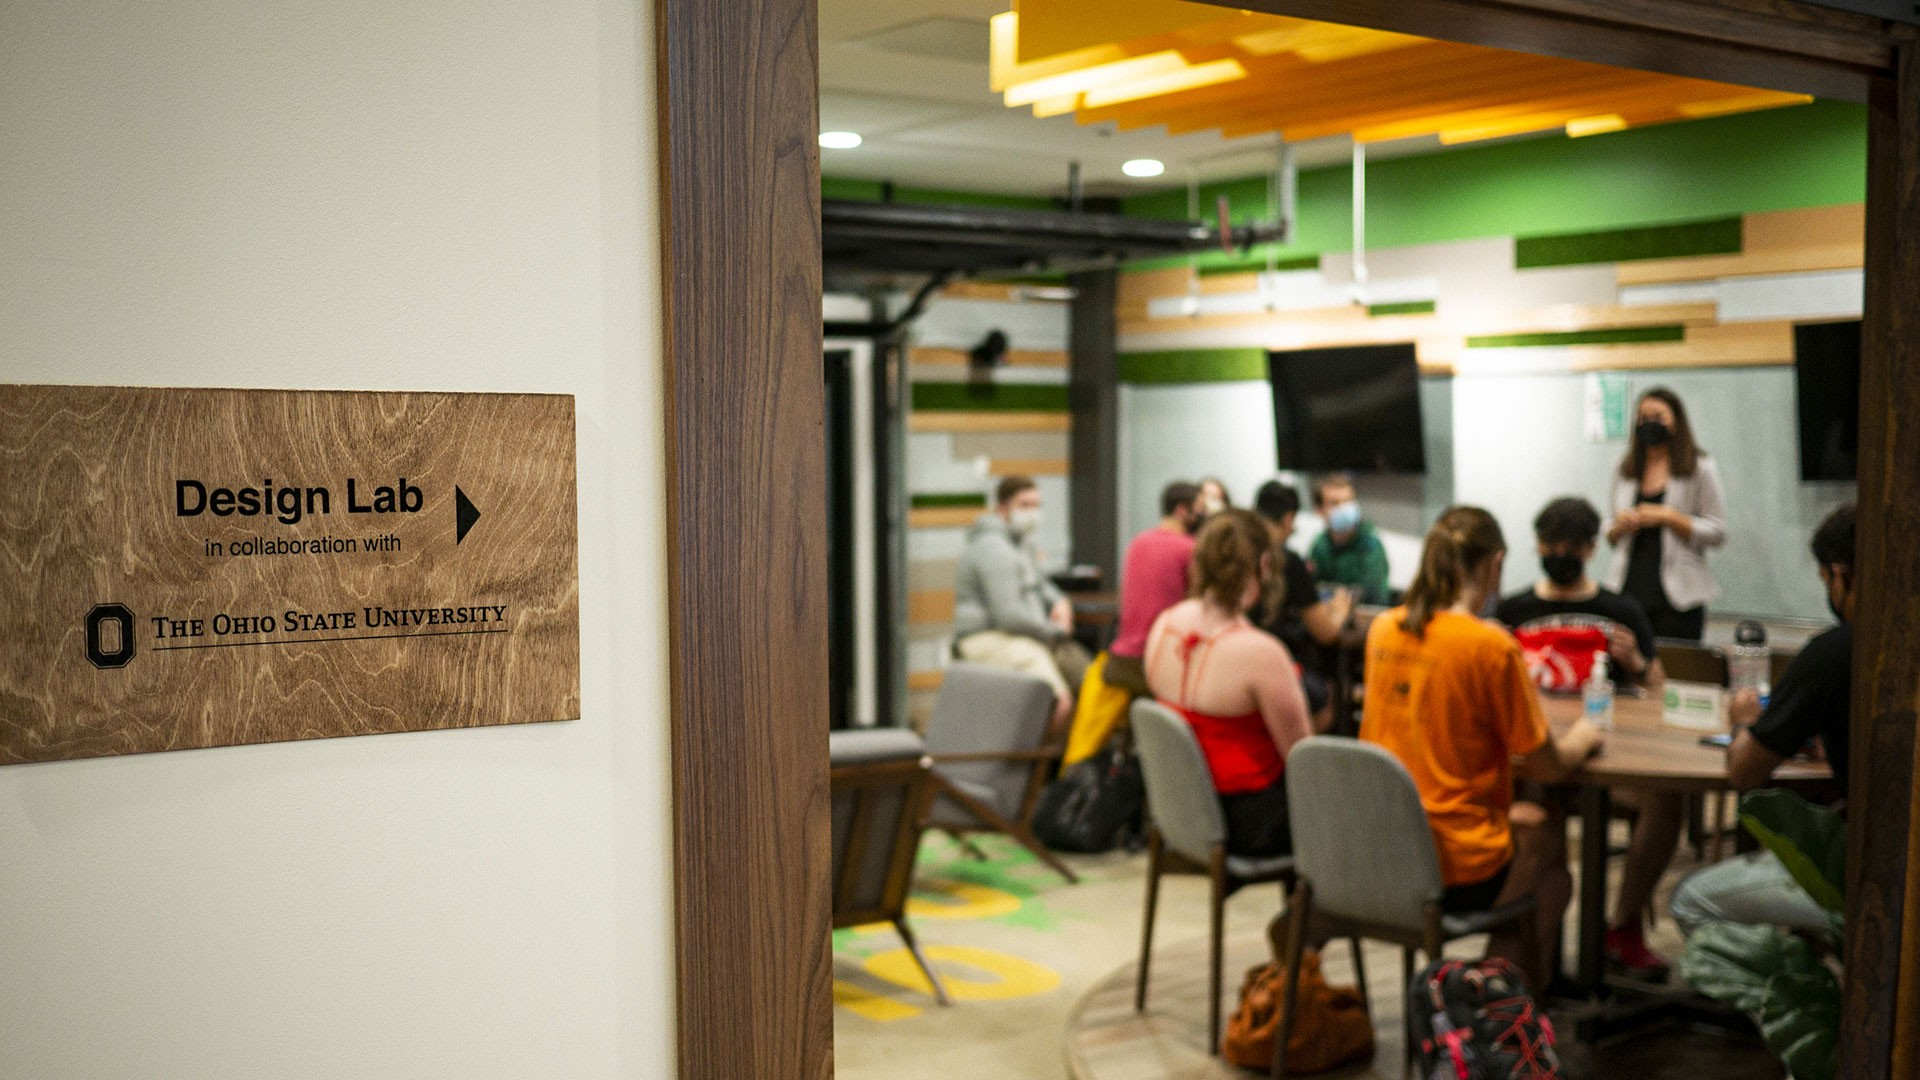 Close up a sign by an open door that reads Design Lab in collaboration with The Ohio State University and a workshop with a group of people is happening inside